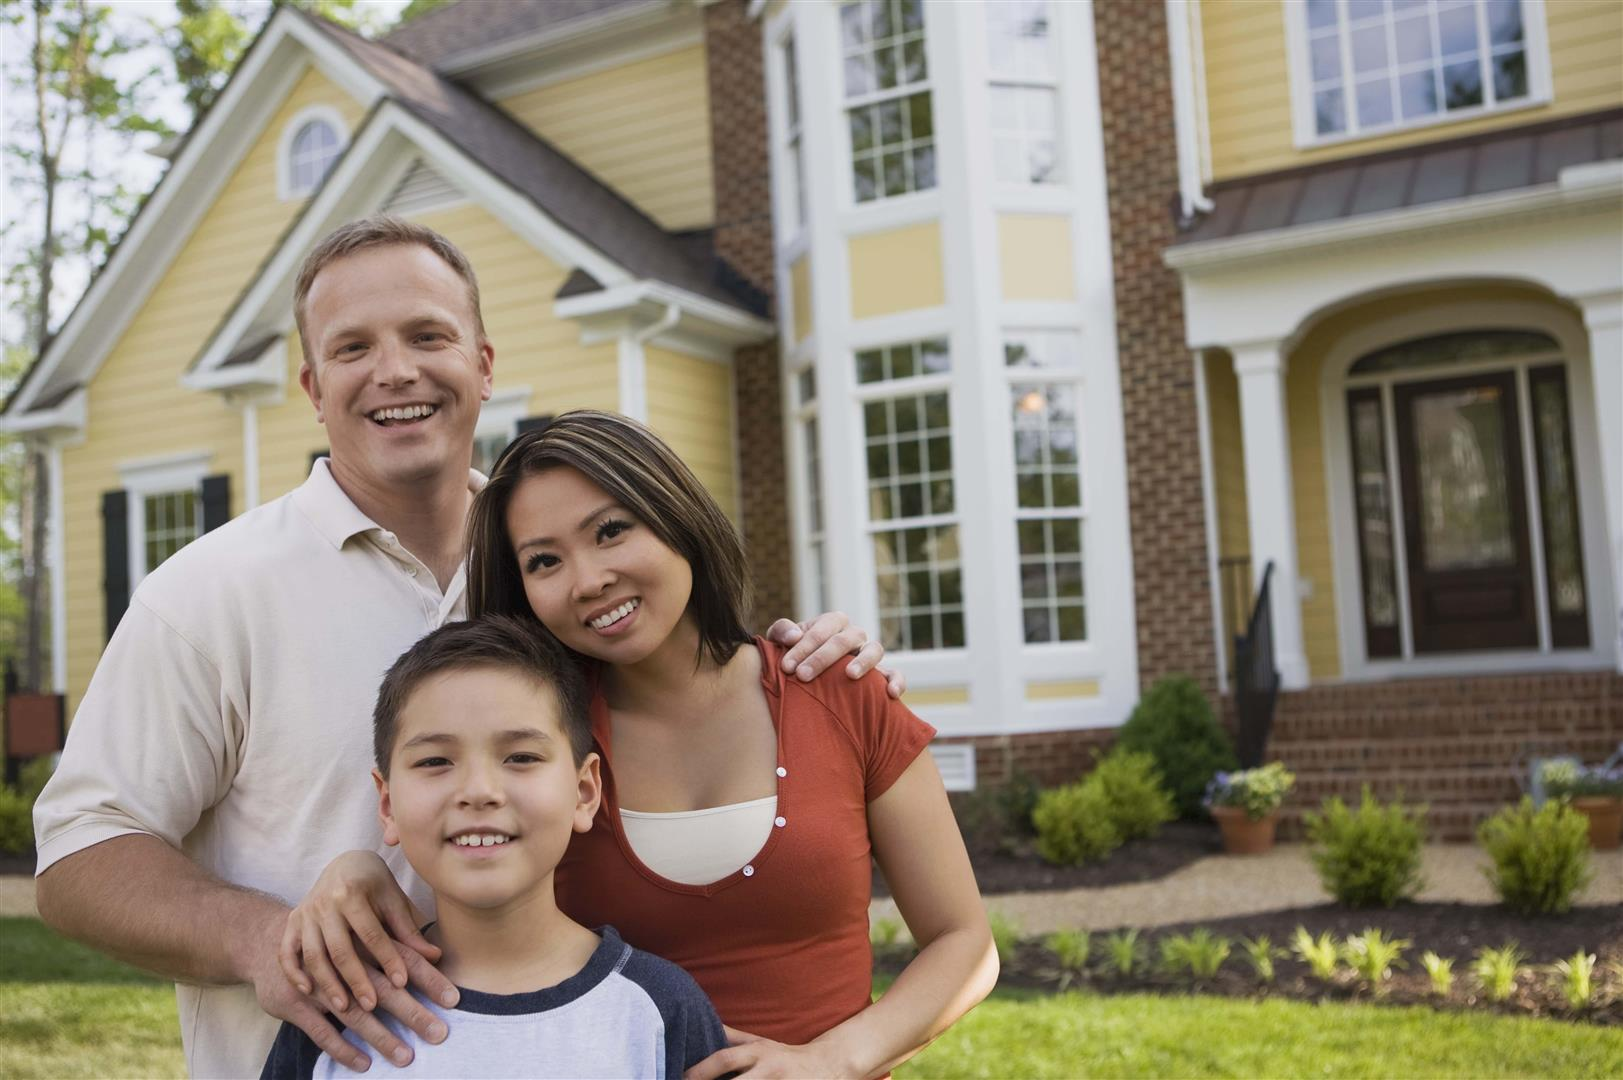 A family who has just listed their property for sale in Baker City, OR